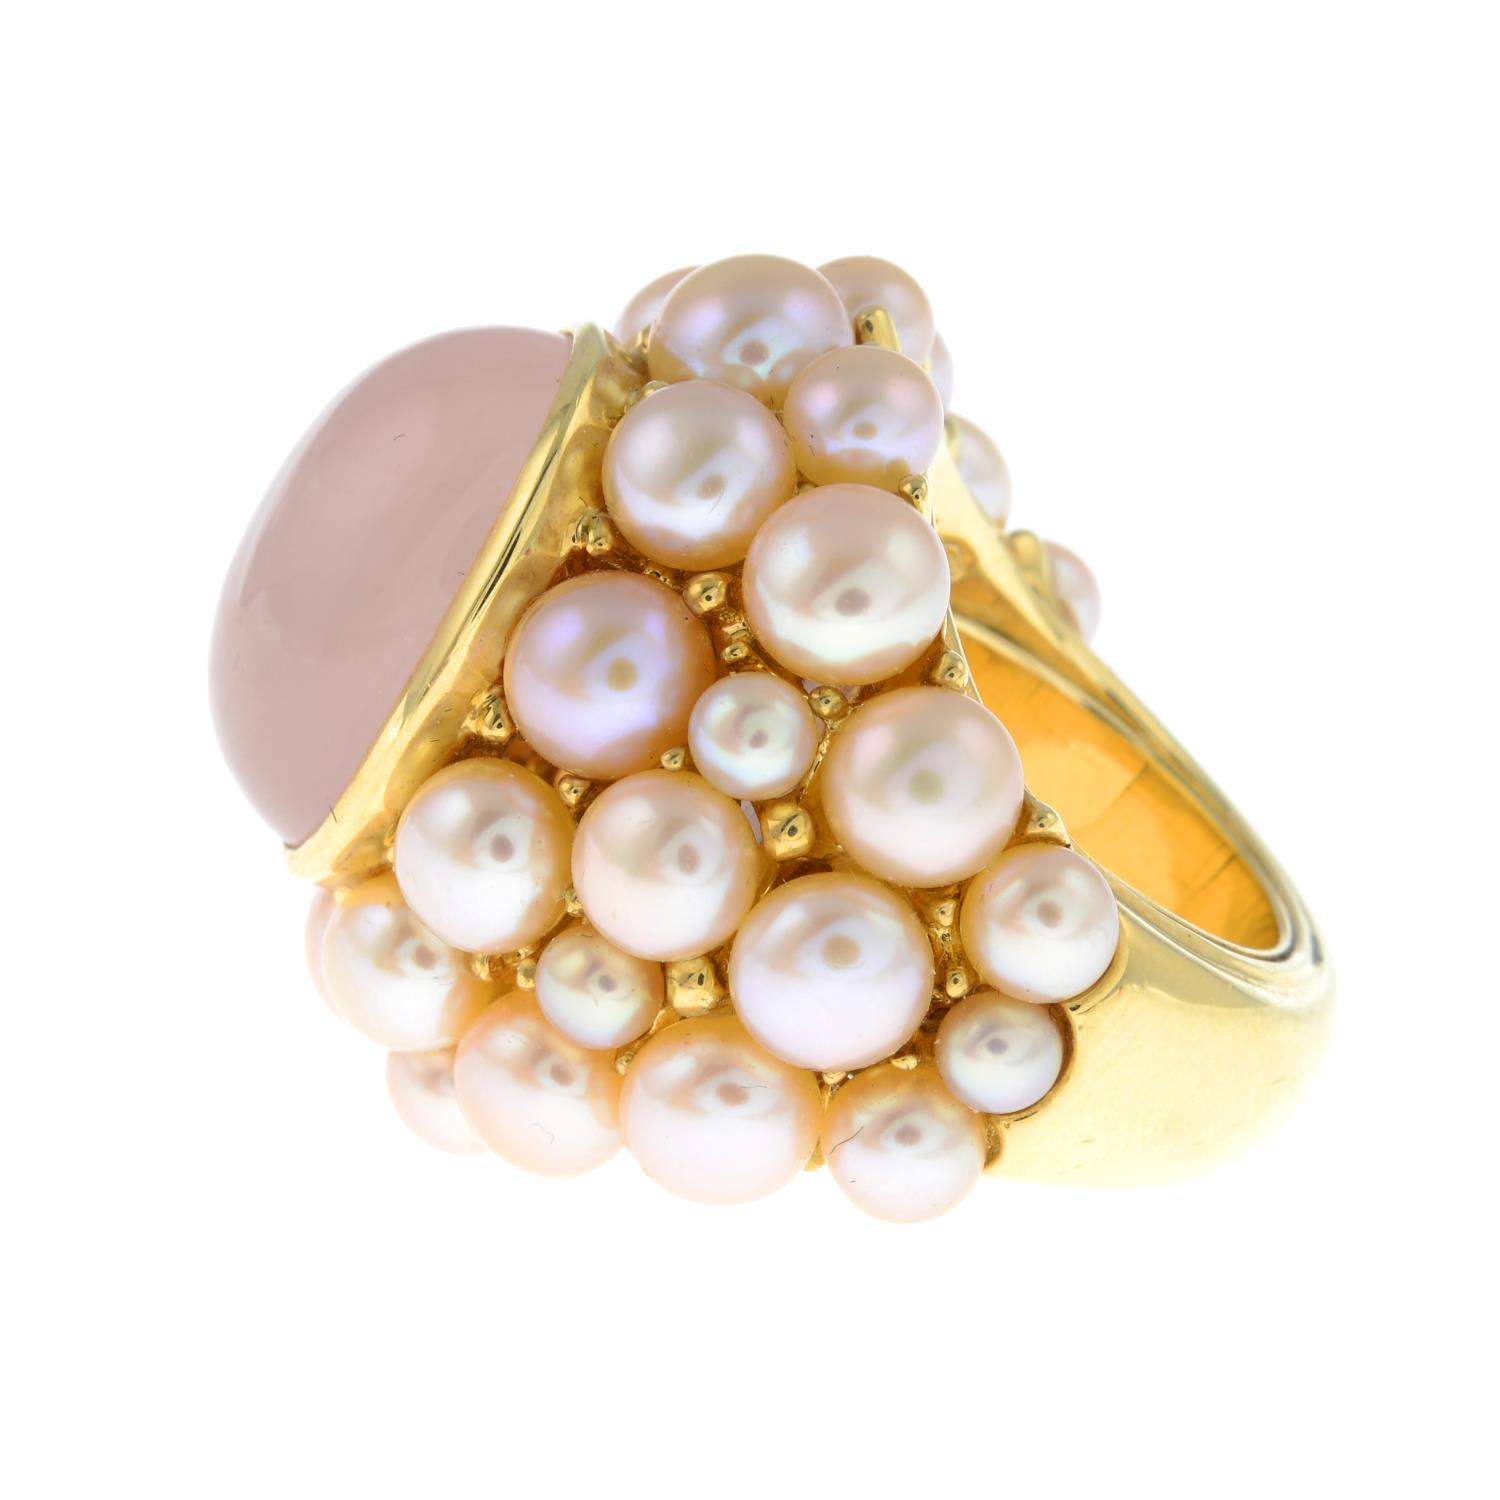 A rose quartz cabochon and pink cultured pearl cocktail ring, by Mimi.Signed Mimi.Stamped 750. - Image 4 of 6